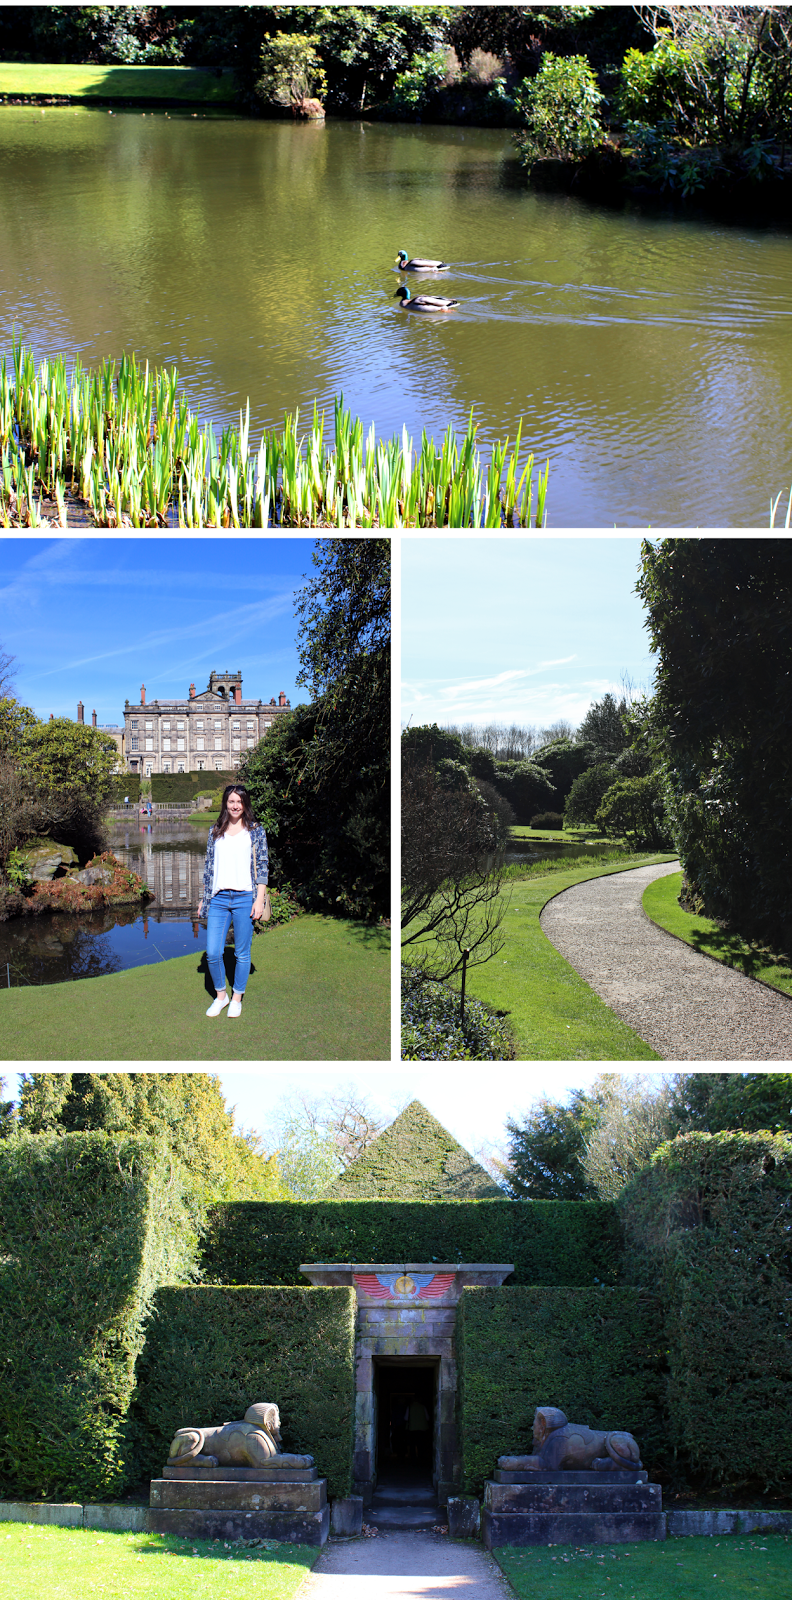 Travel the world at Biddulph Grange Gardens, National Trust property